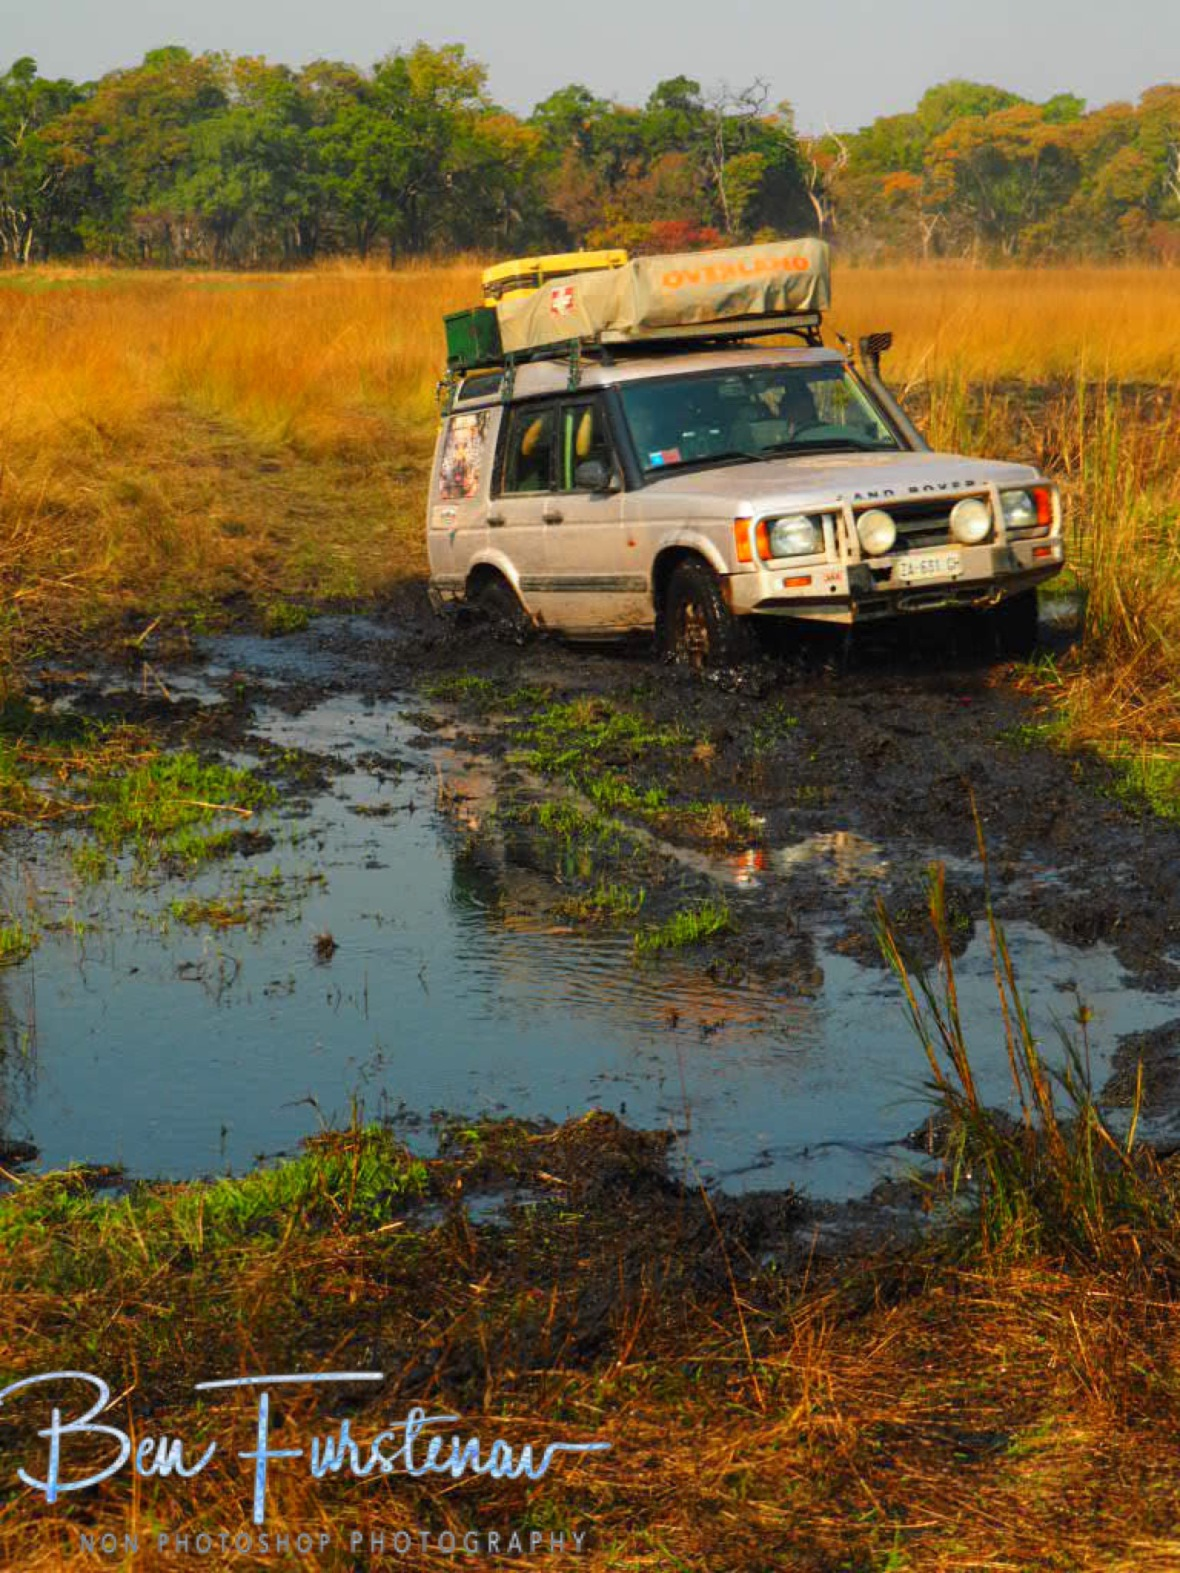 Jean Carlos Landrover battling mud in Liuwa Plains National Park, Zambia